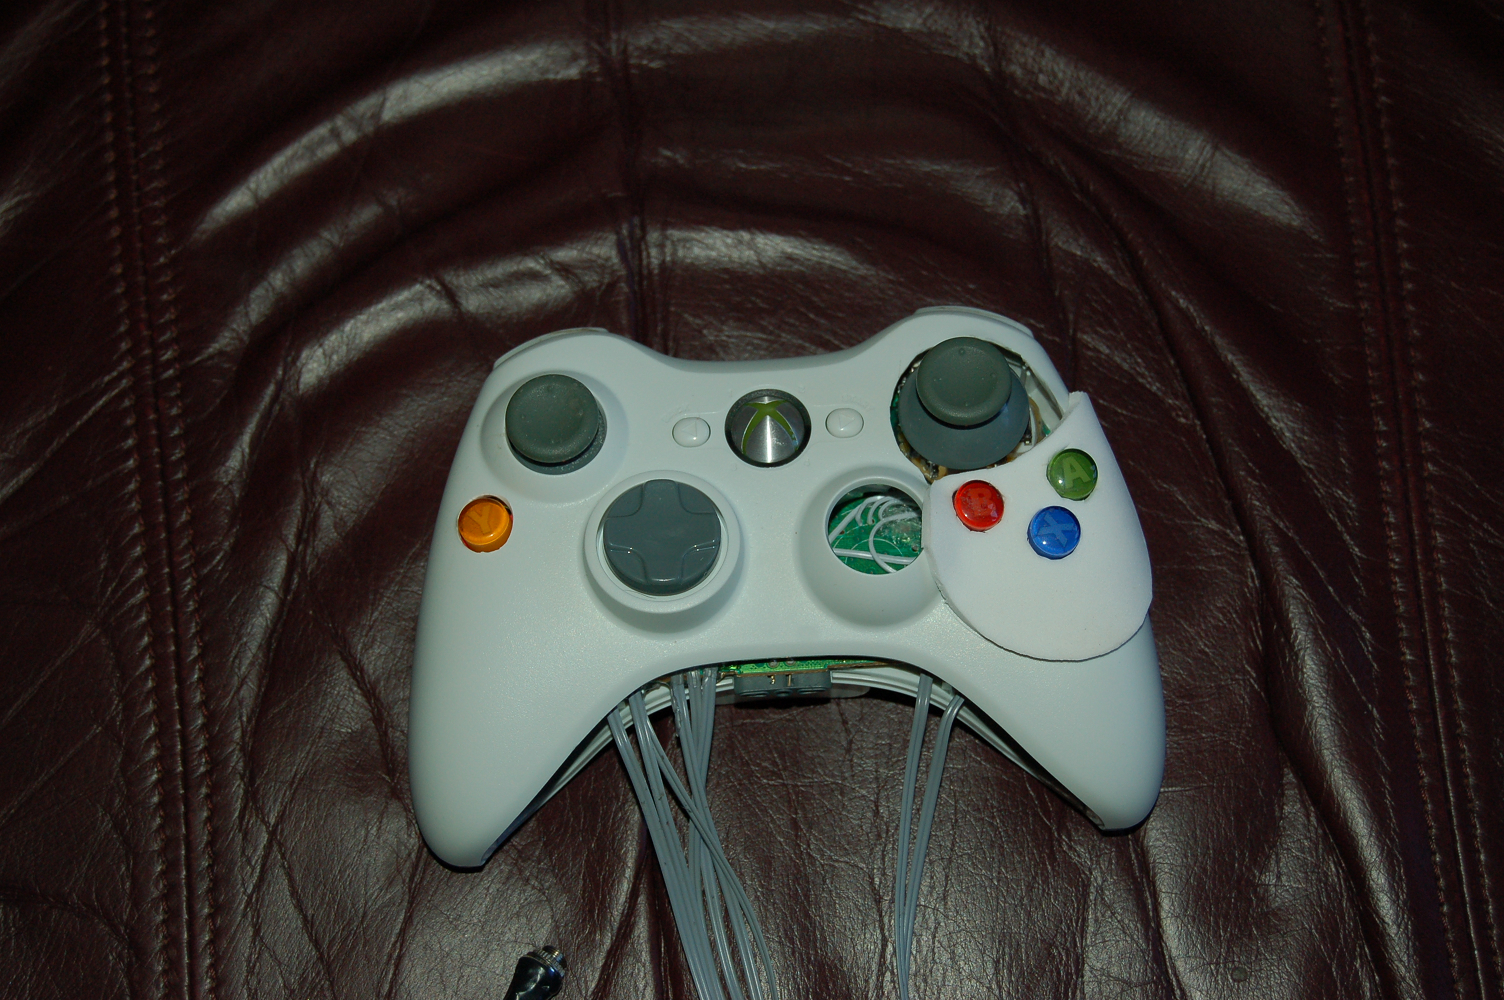 Photo of the final modified Xbox 360 controller